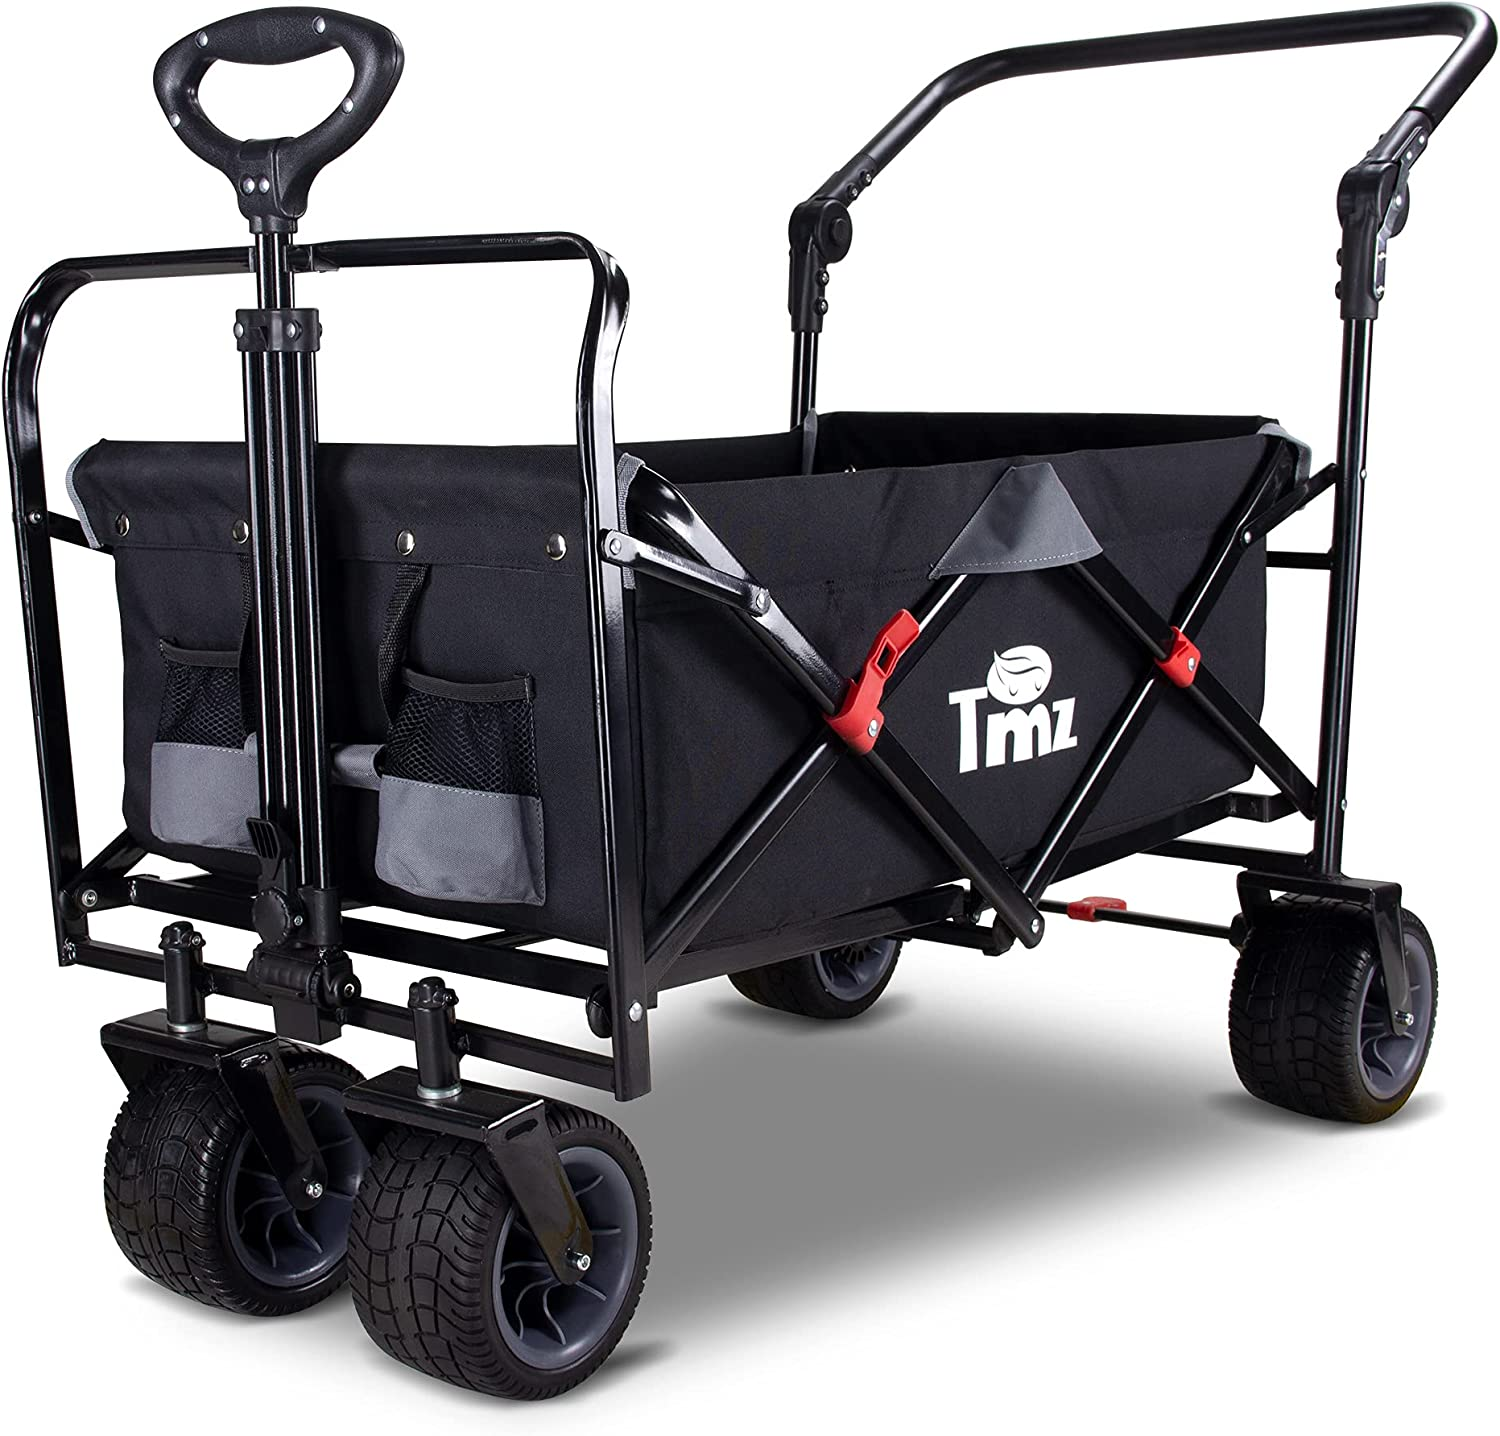 TMZ All Terrain Utility Folding Wagon, Collapsible Garden Cart, Heavy Duty Beach Wagon, for Shopping, Camping, and Outdoor Activities with Push Handle and Brakes (Black/Grey)